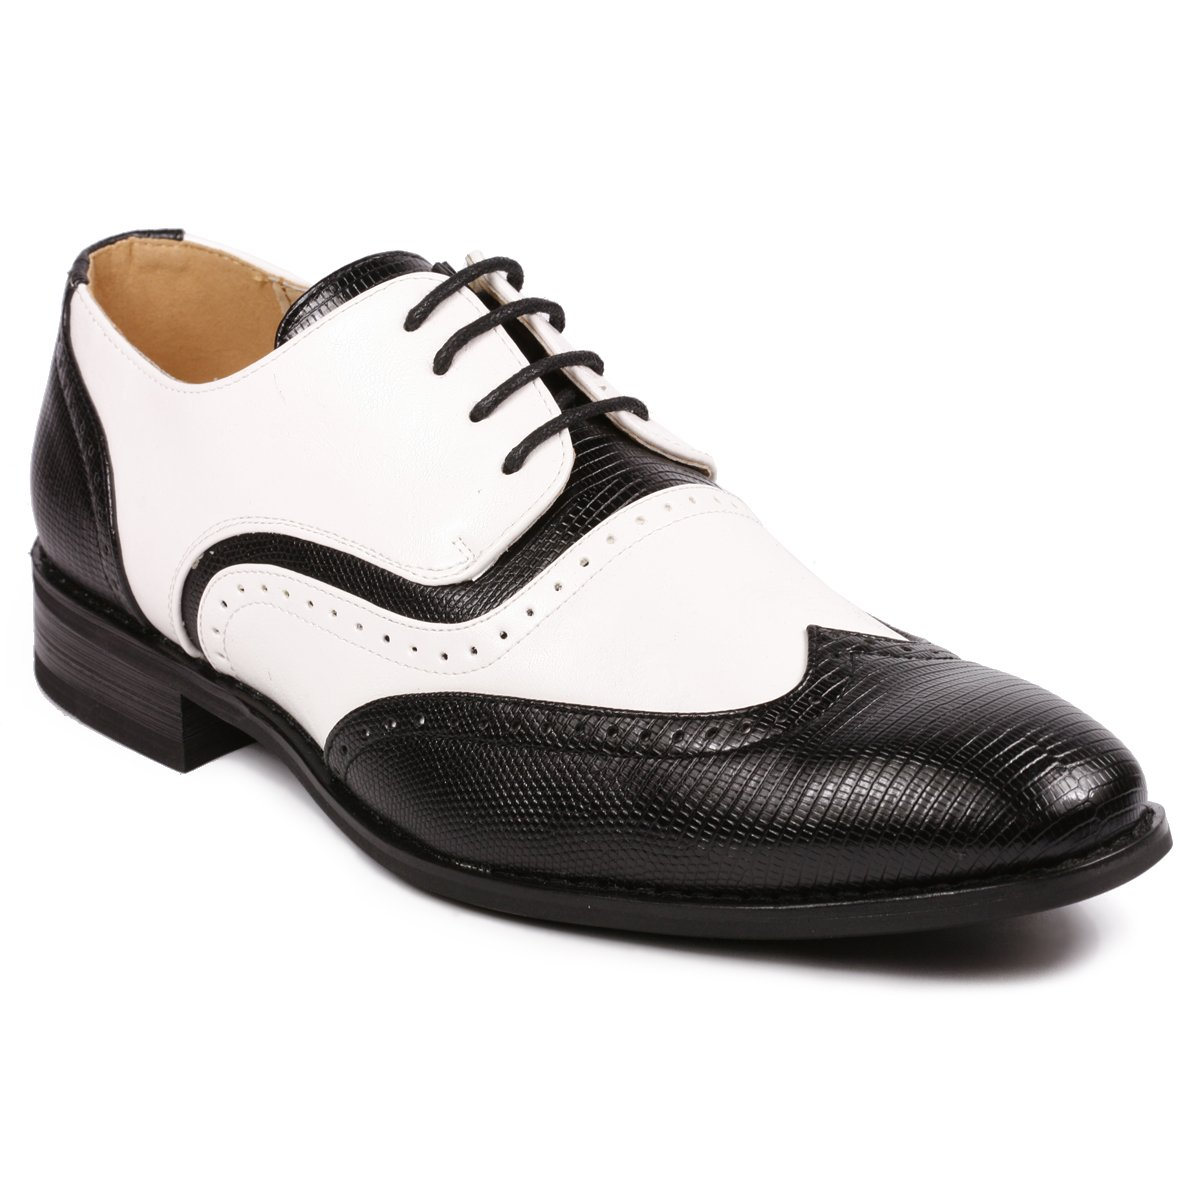 Downton Abbey Men's Fashion Guide Metrocharm MC113 Mens Wing Tip Perforated Lace Up Oxford Dress Shoes $39.99 AT vintagedancer.com